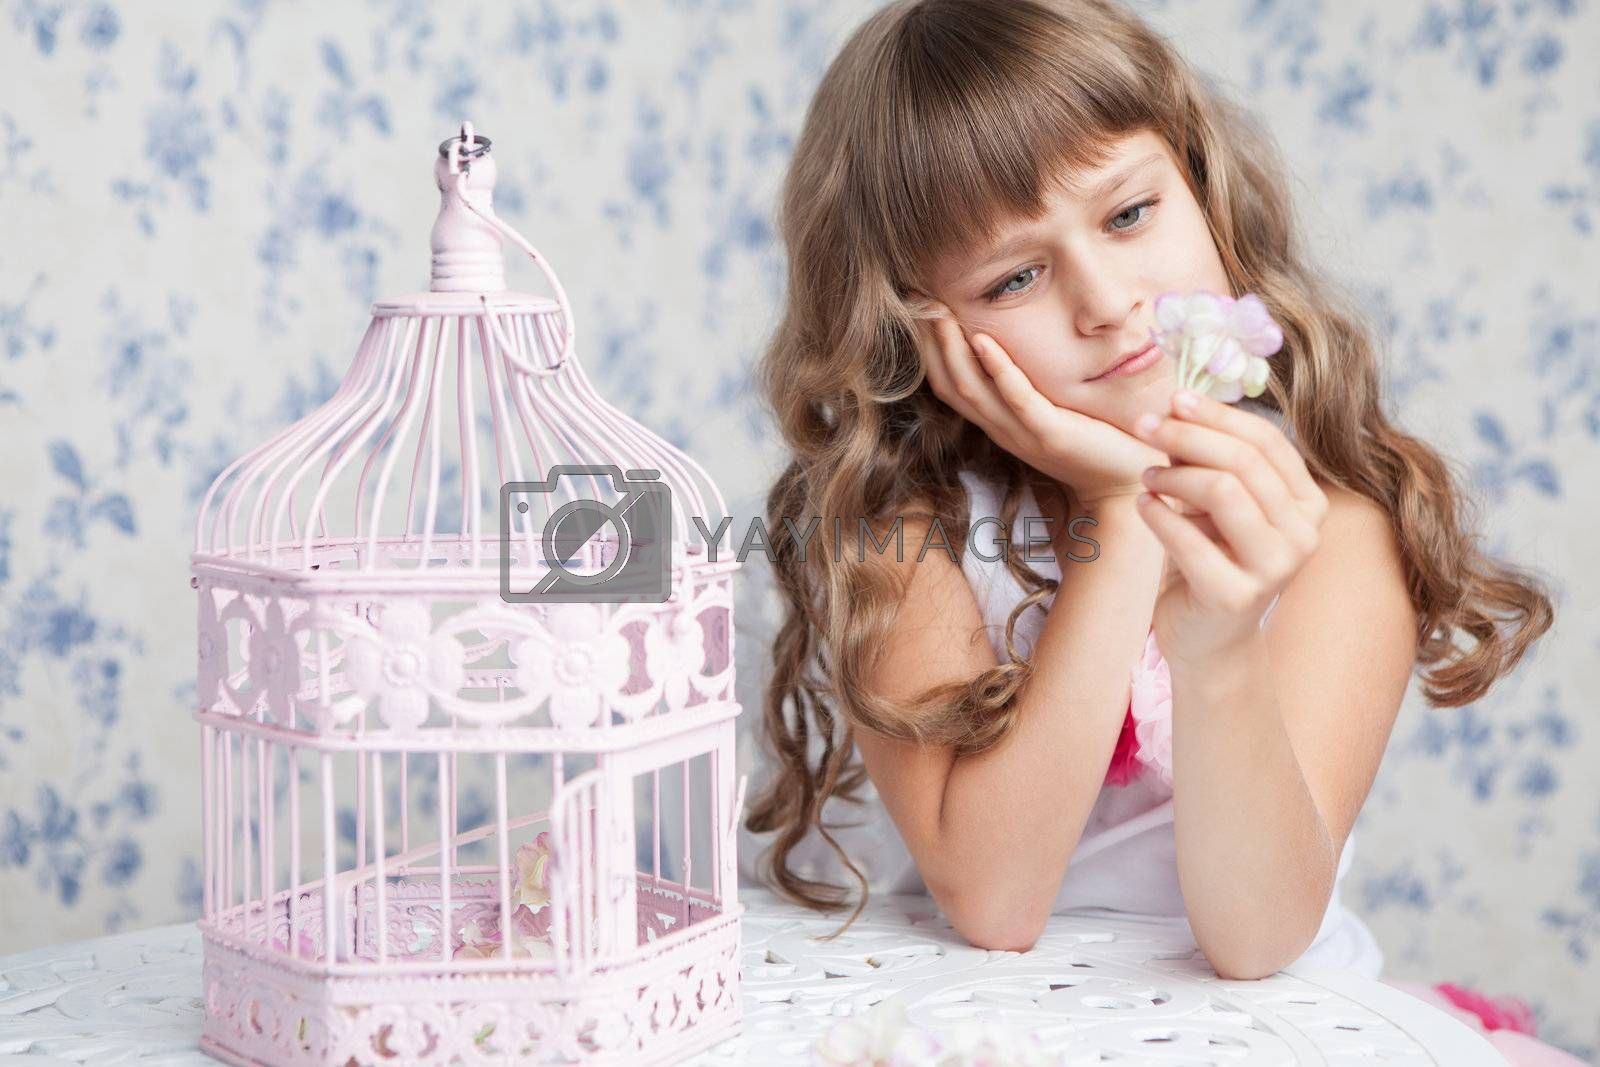 Portrait of tender sincere dreamy romantic openhearted blond girl with long wavy hair looking at flower seating near open empty pink birdcage and lacy white table on the light blue flower background